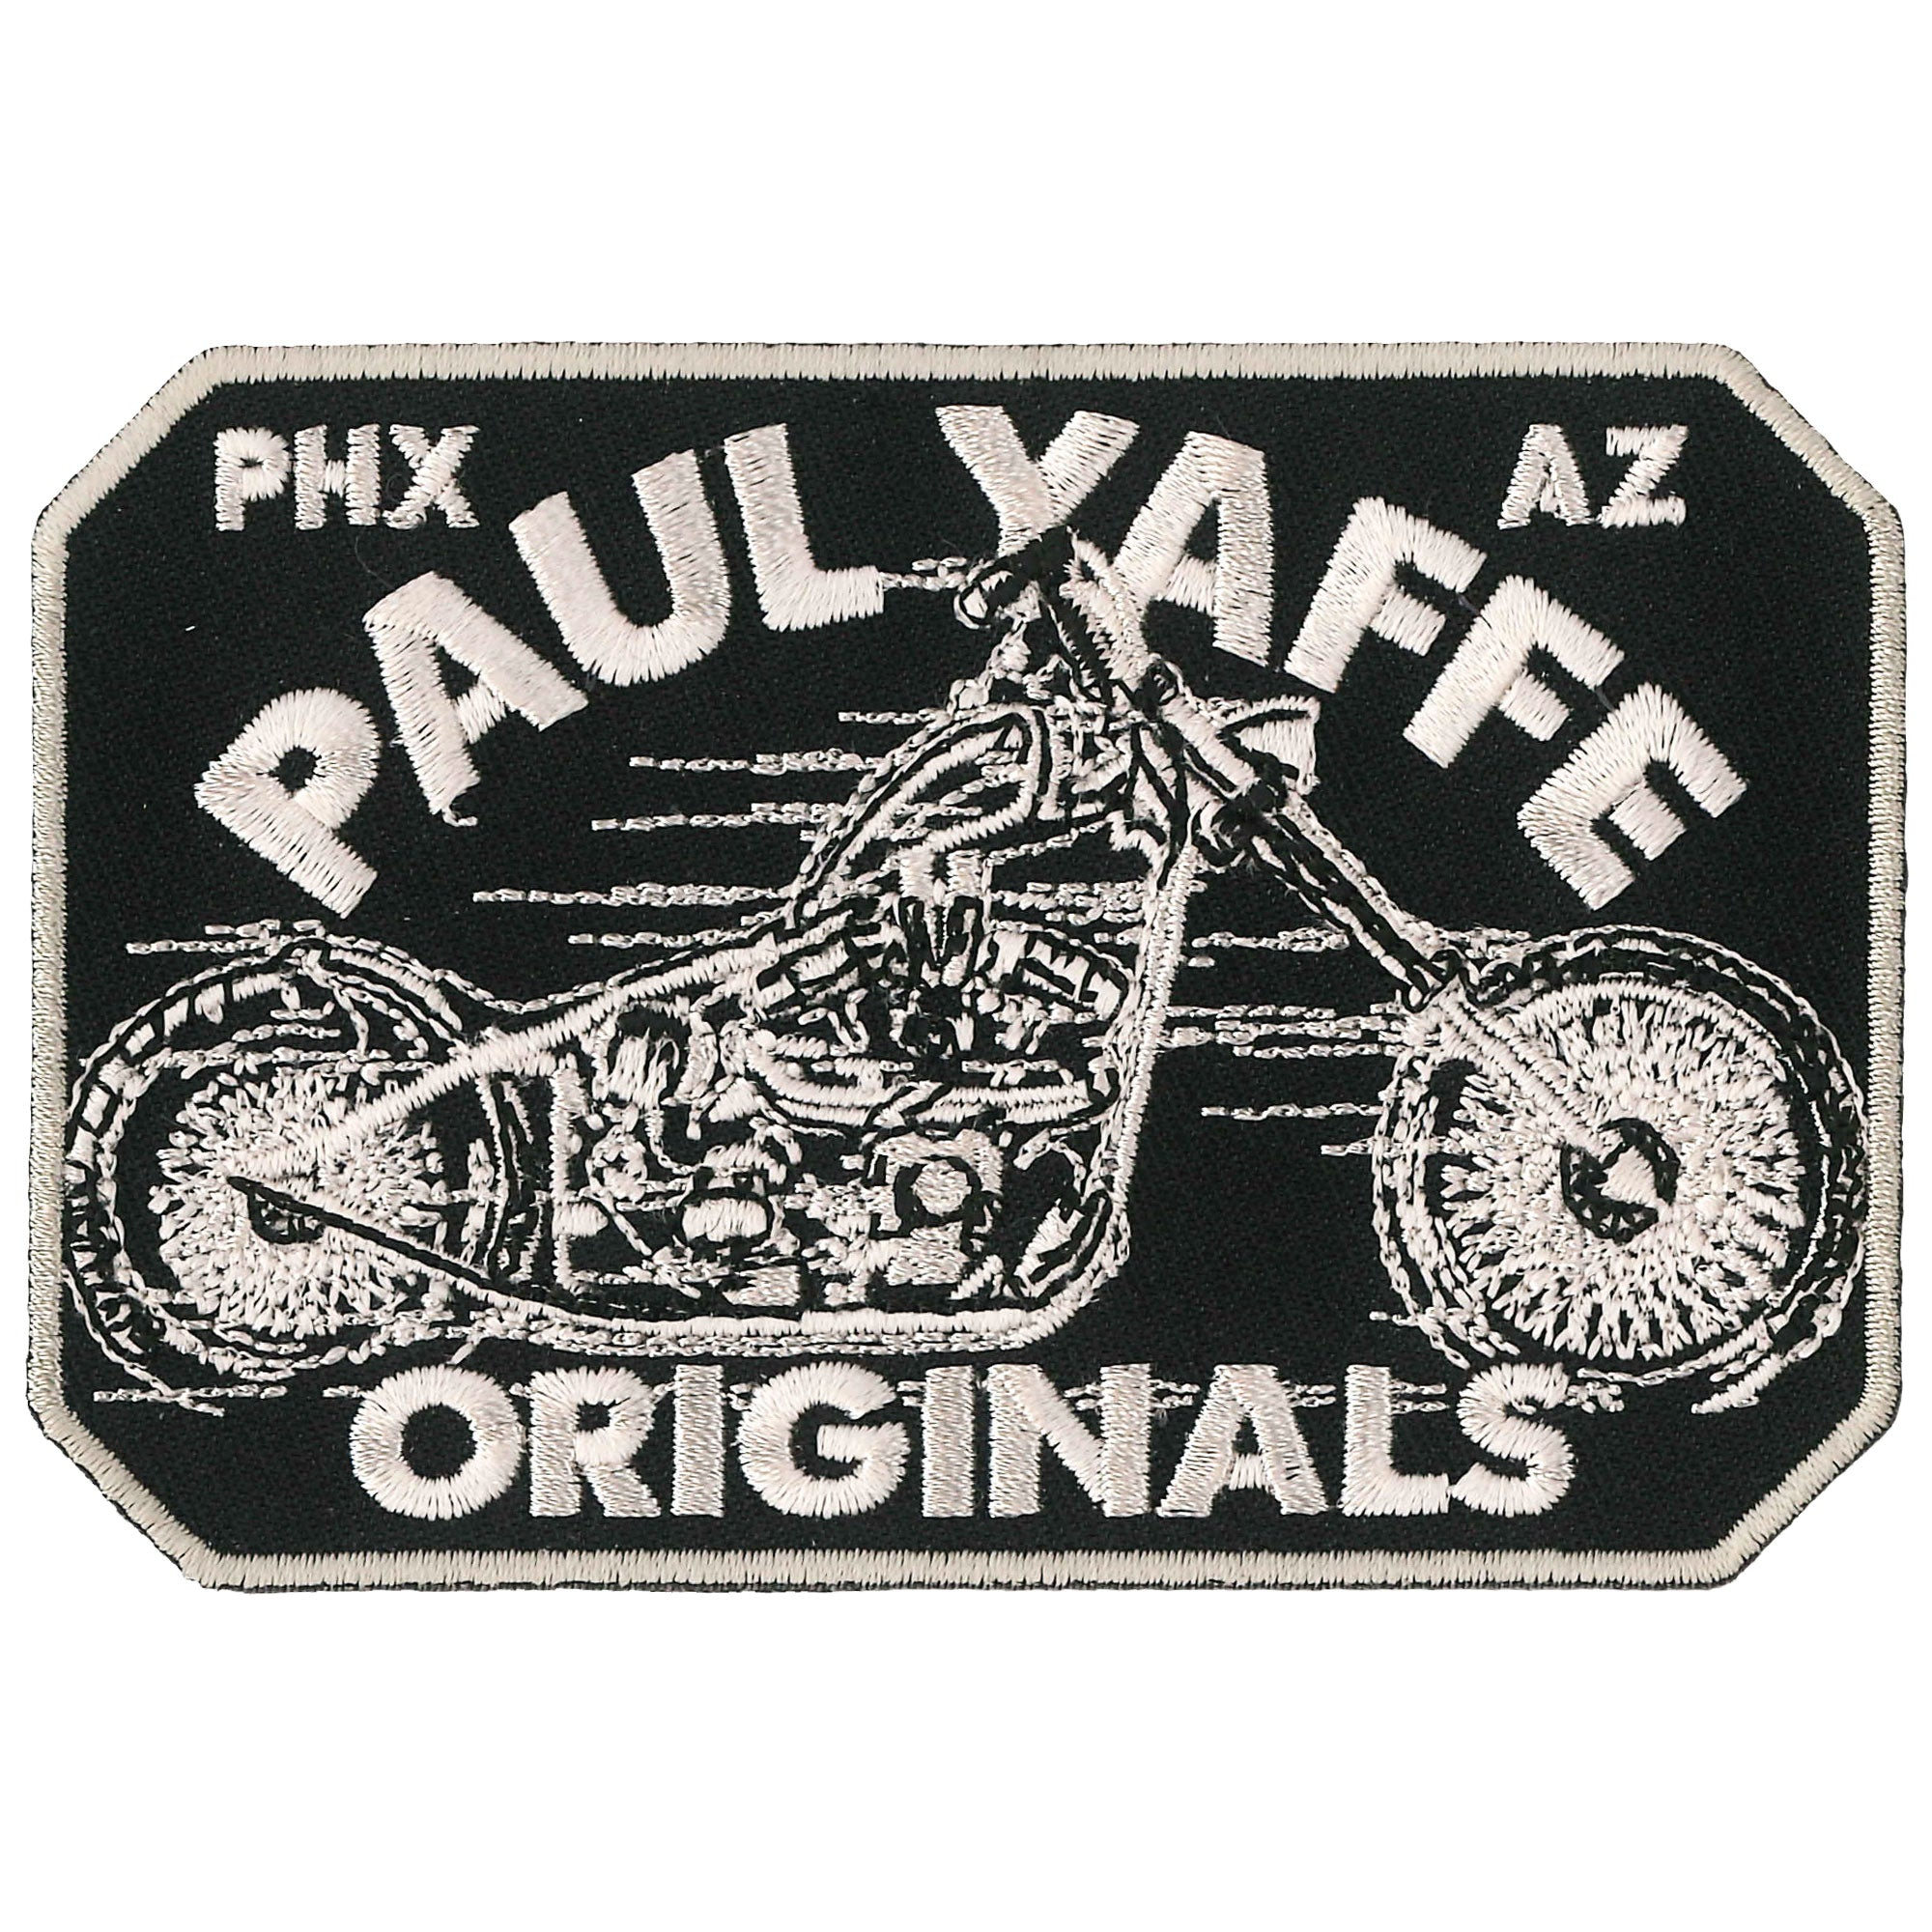 Official Paul Yaffe's El Cadiente Patch